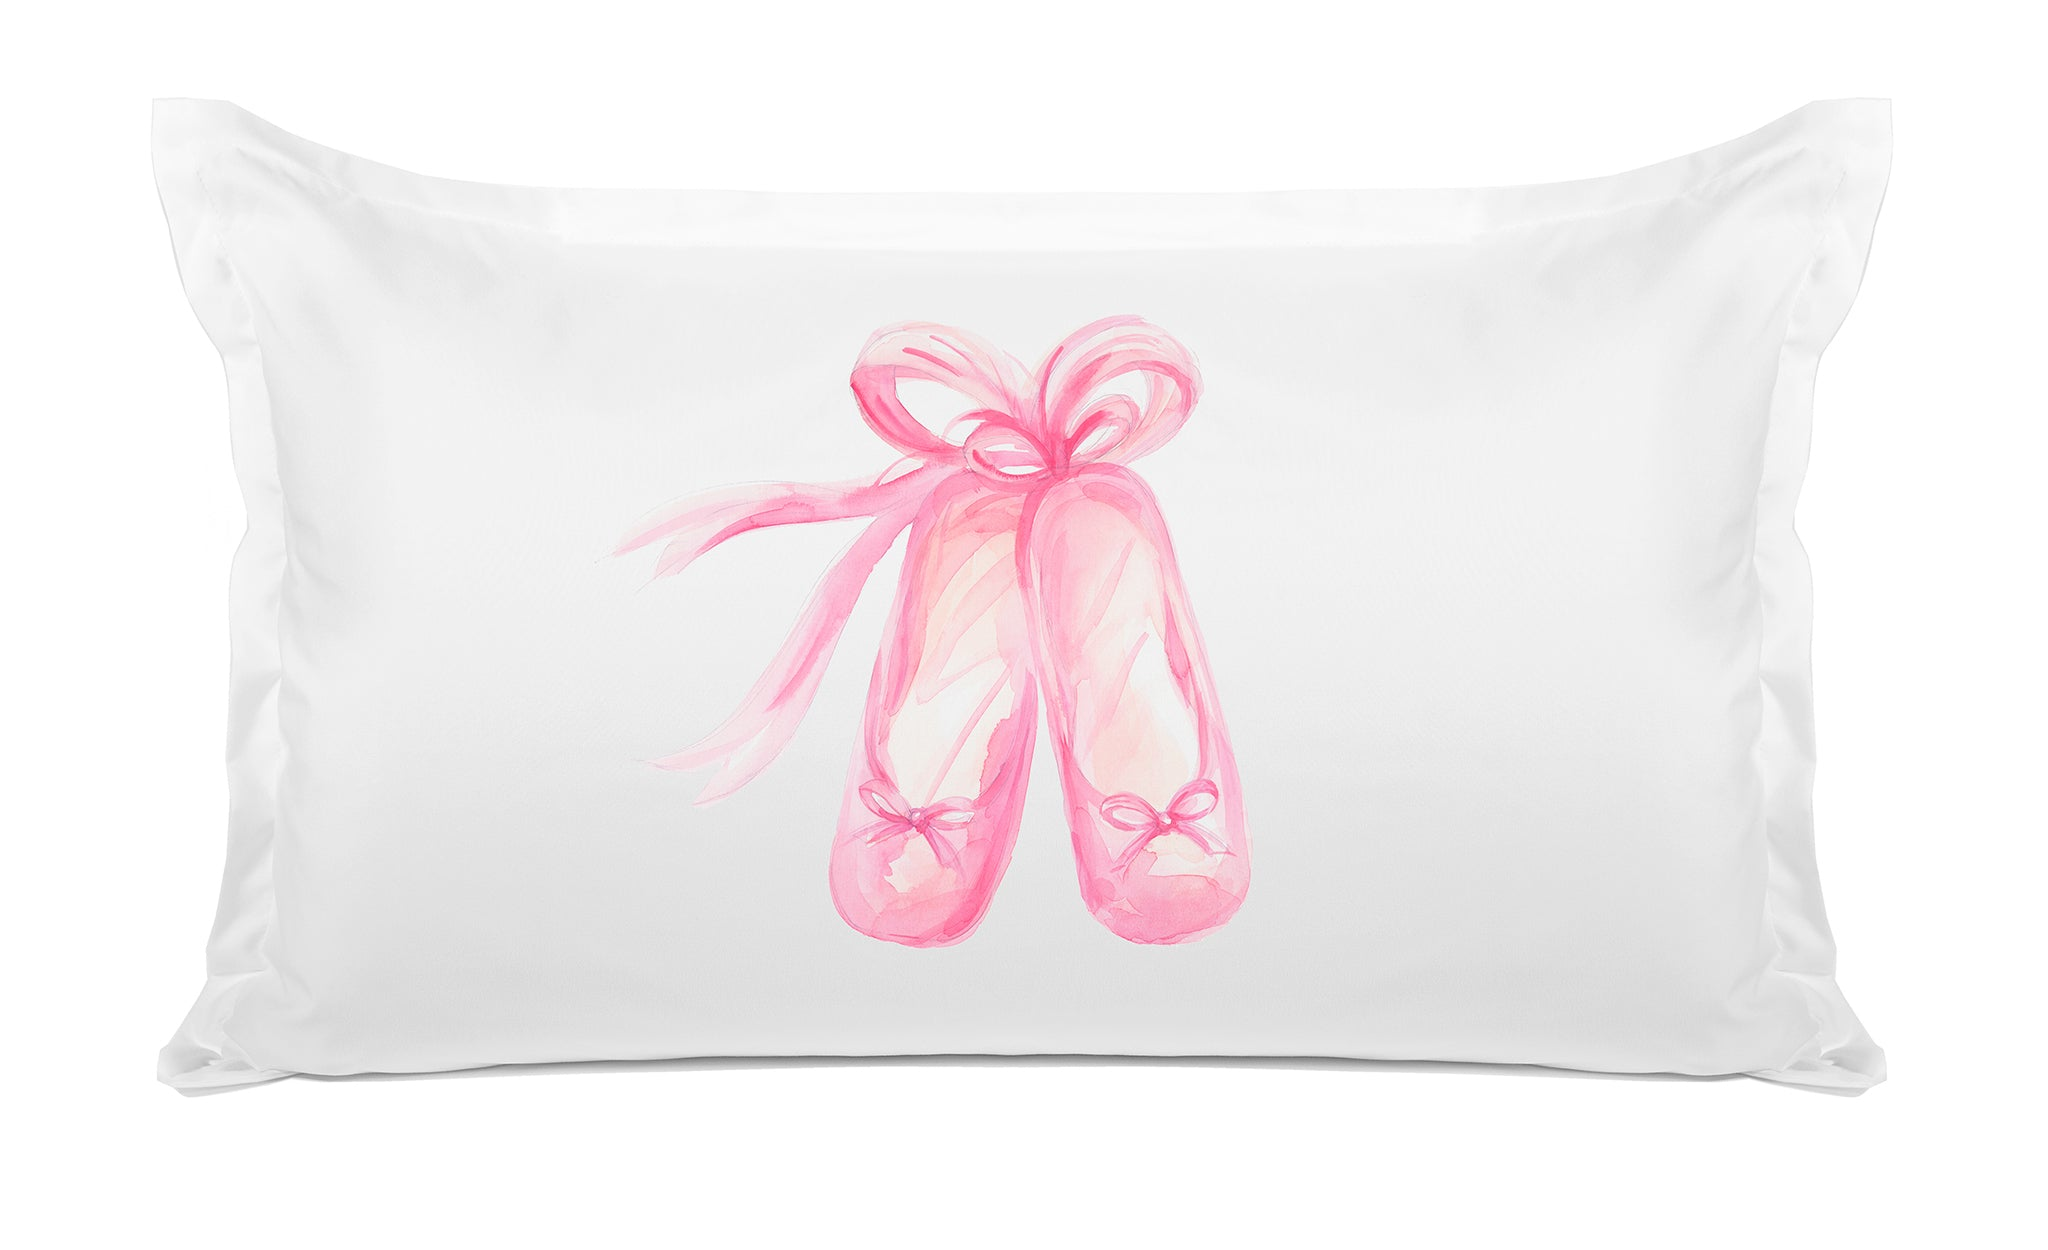 Ballet Slippers - Personalized Kids Pillowcase Collection